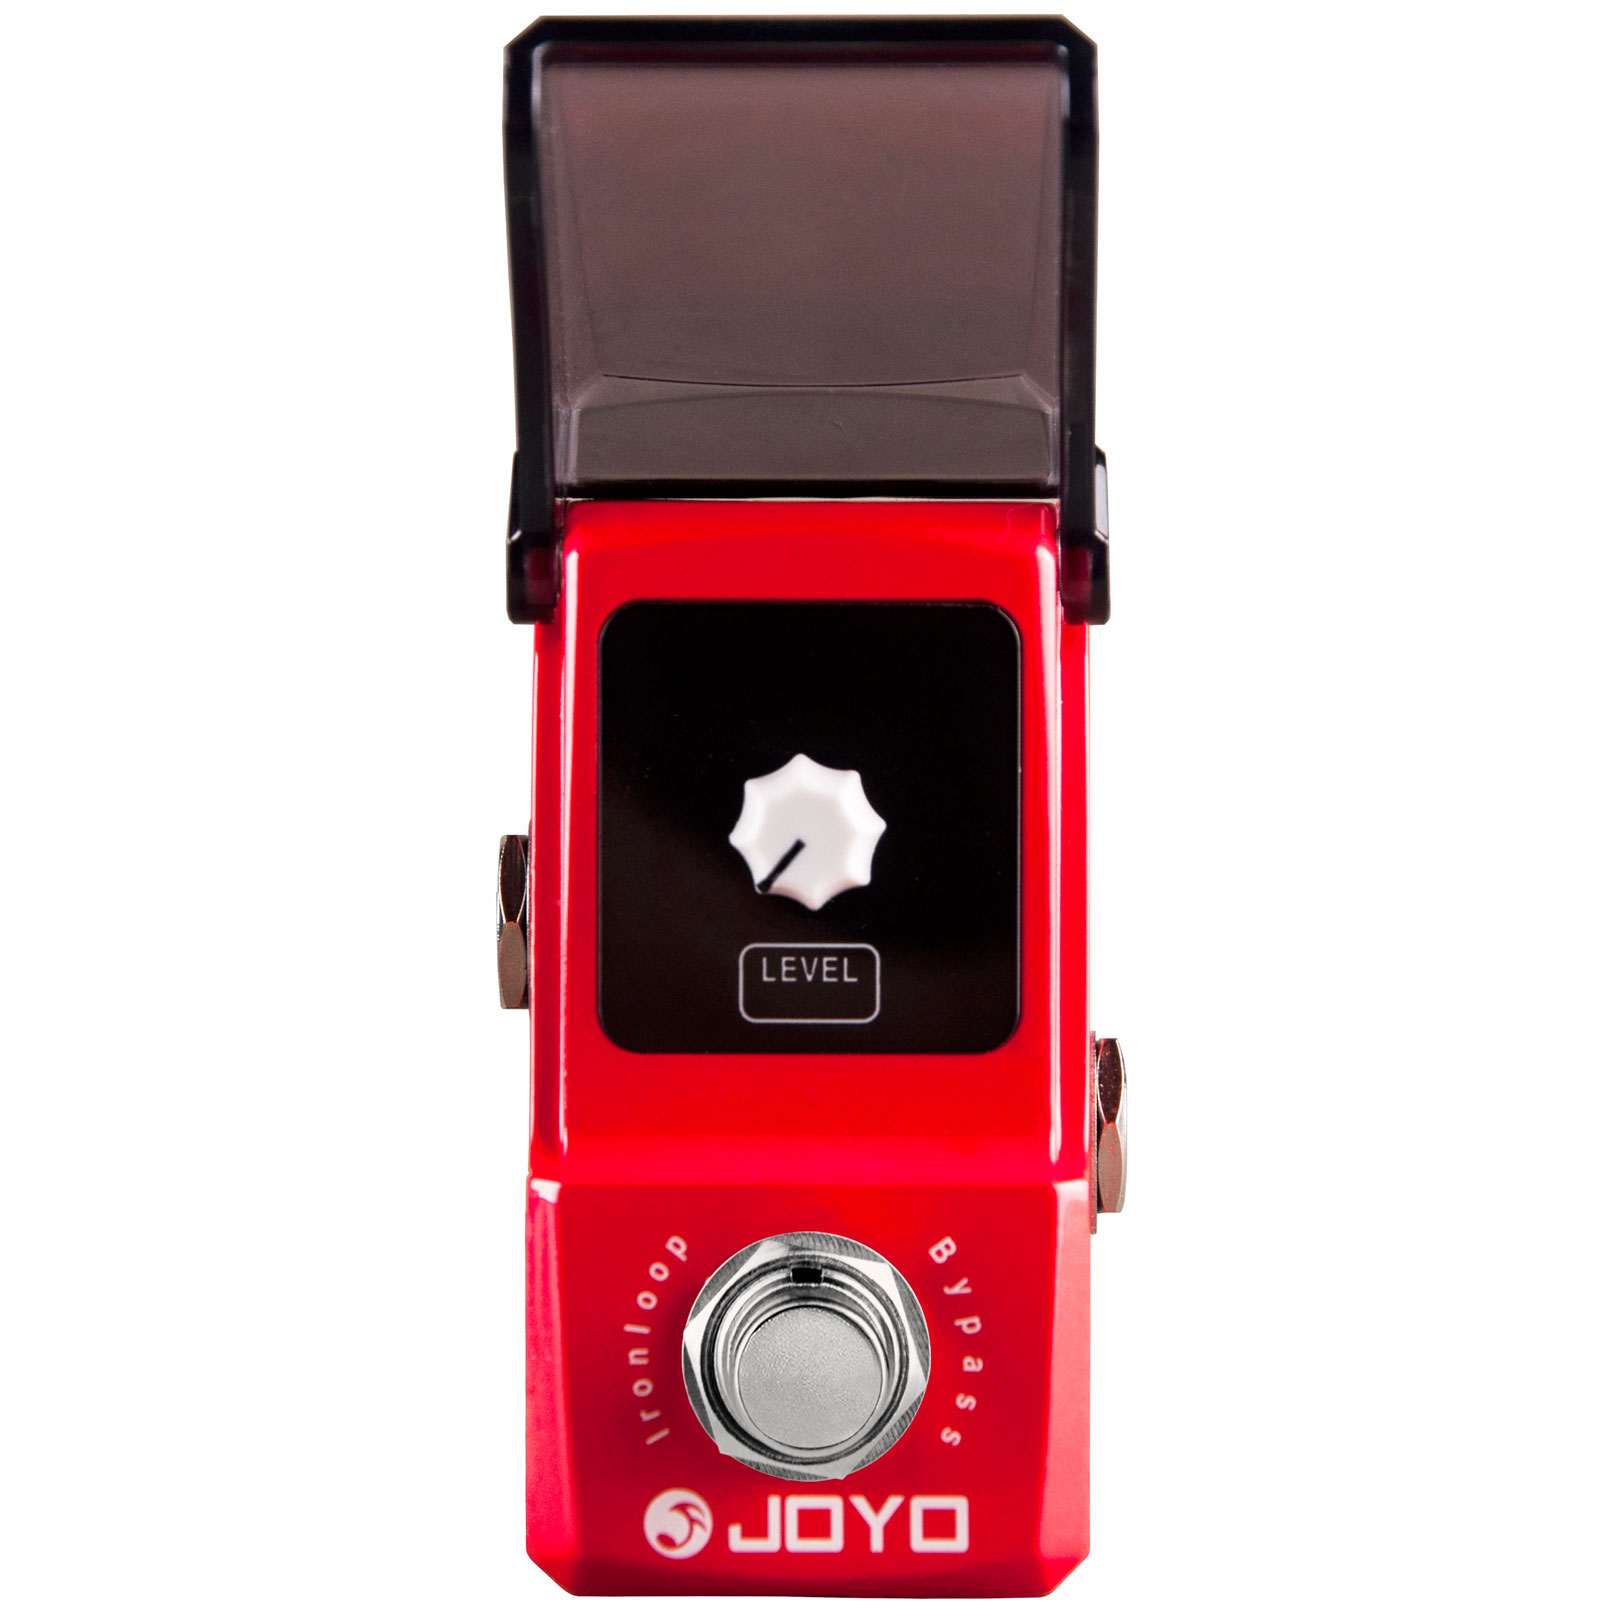 【JOYO】New IRONMAN Release!!